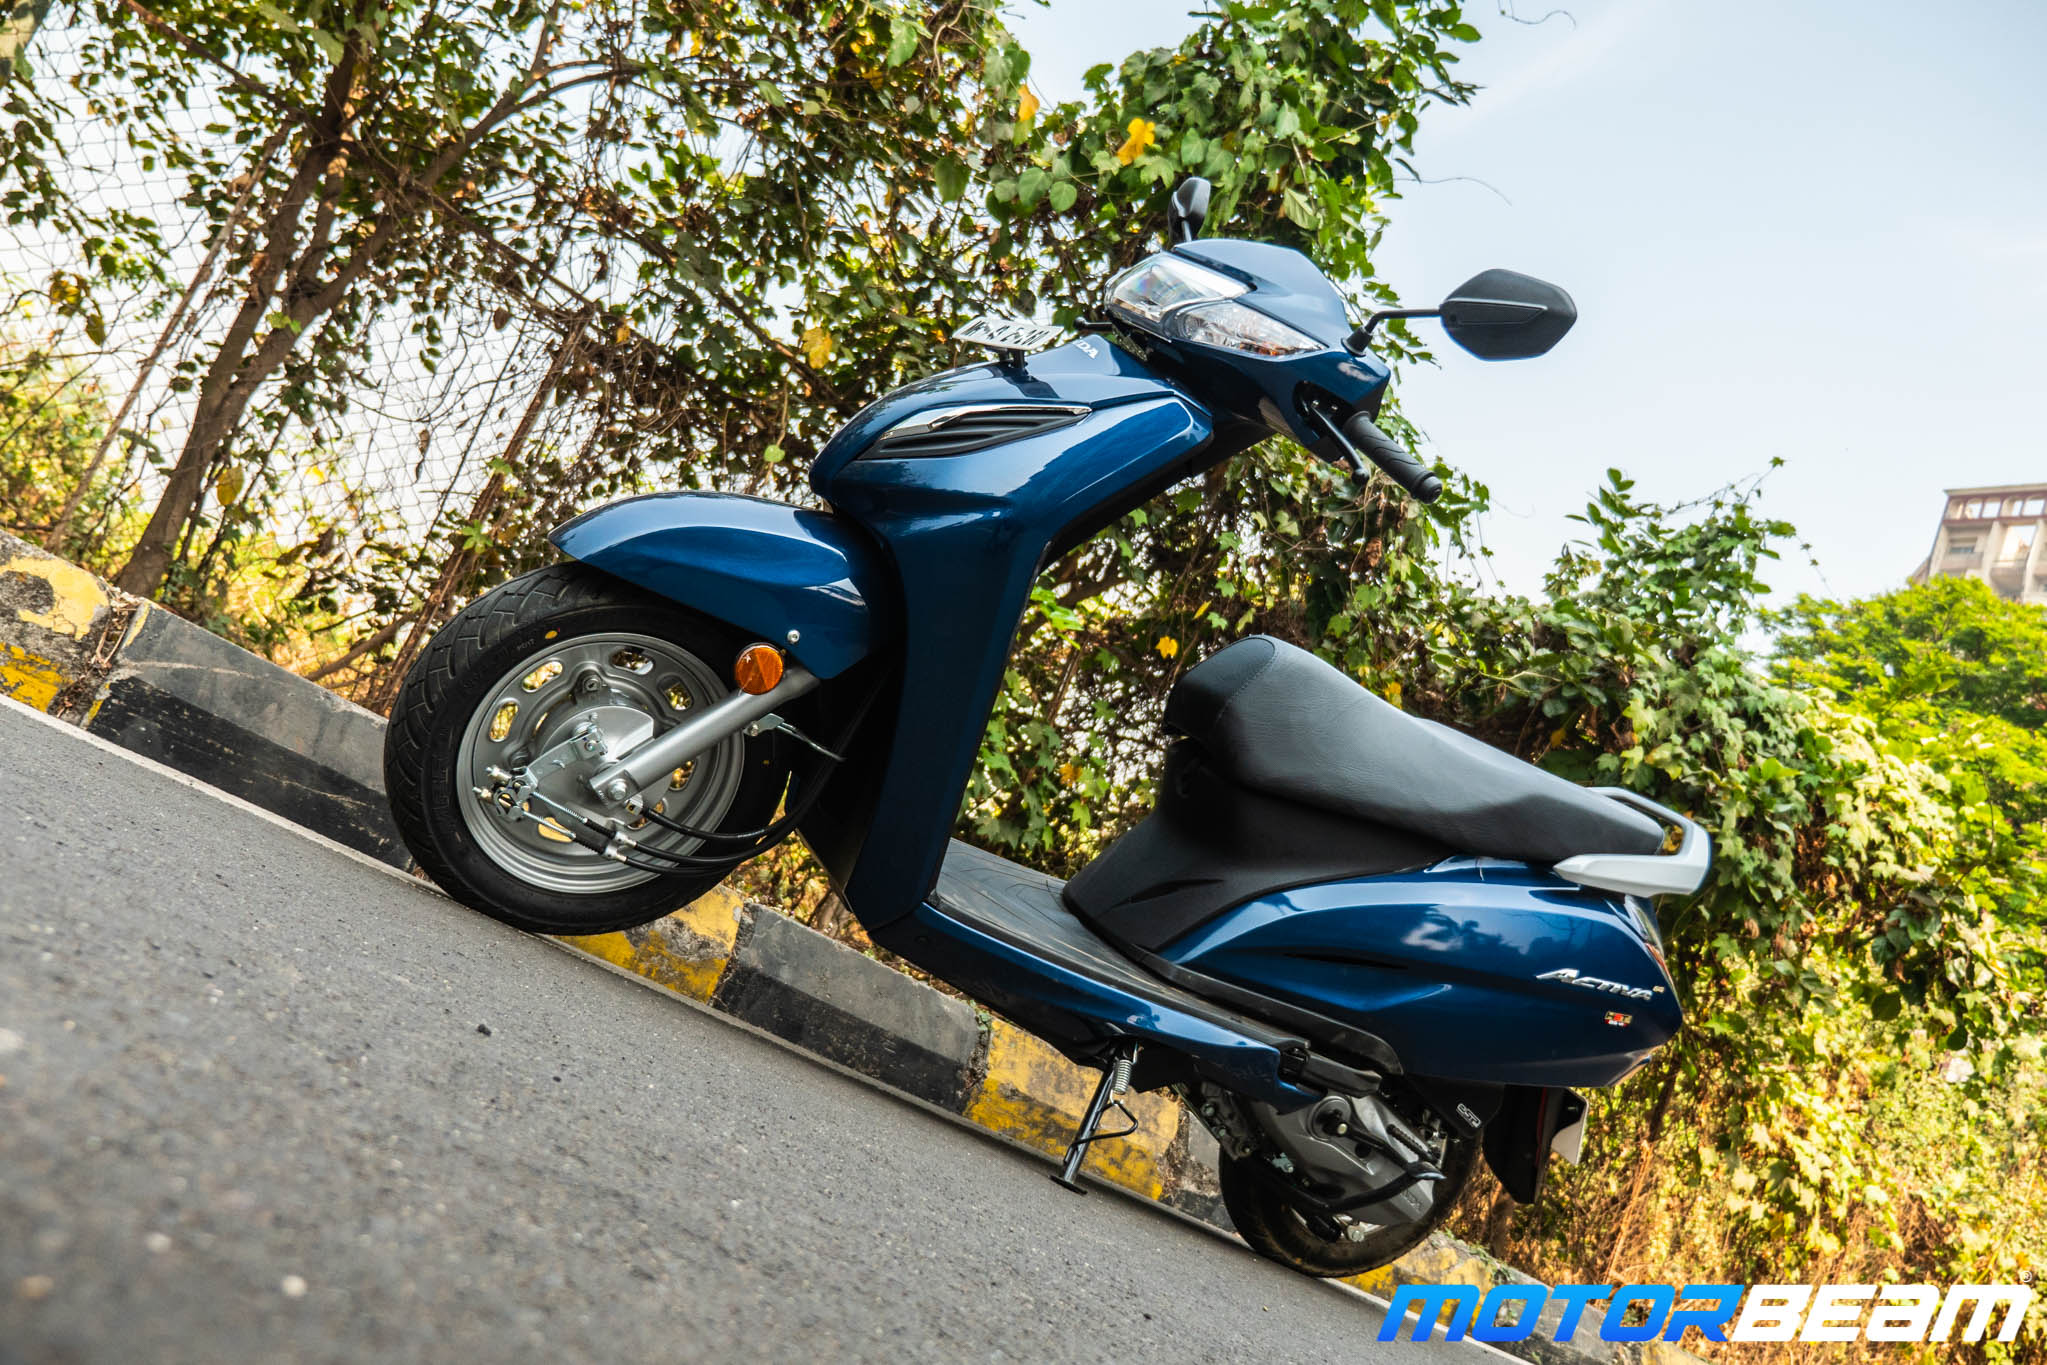 2020 Honda Activa 6G Test Ride Review